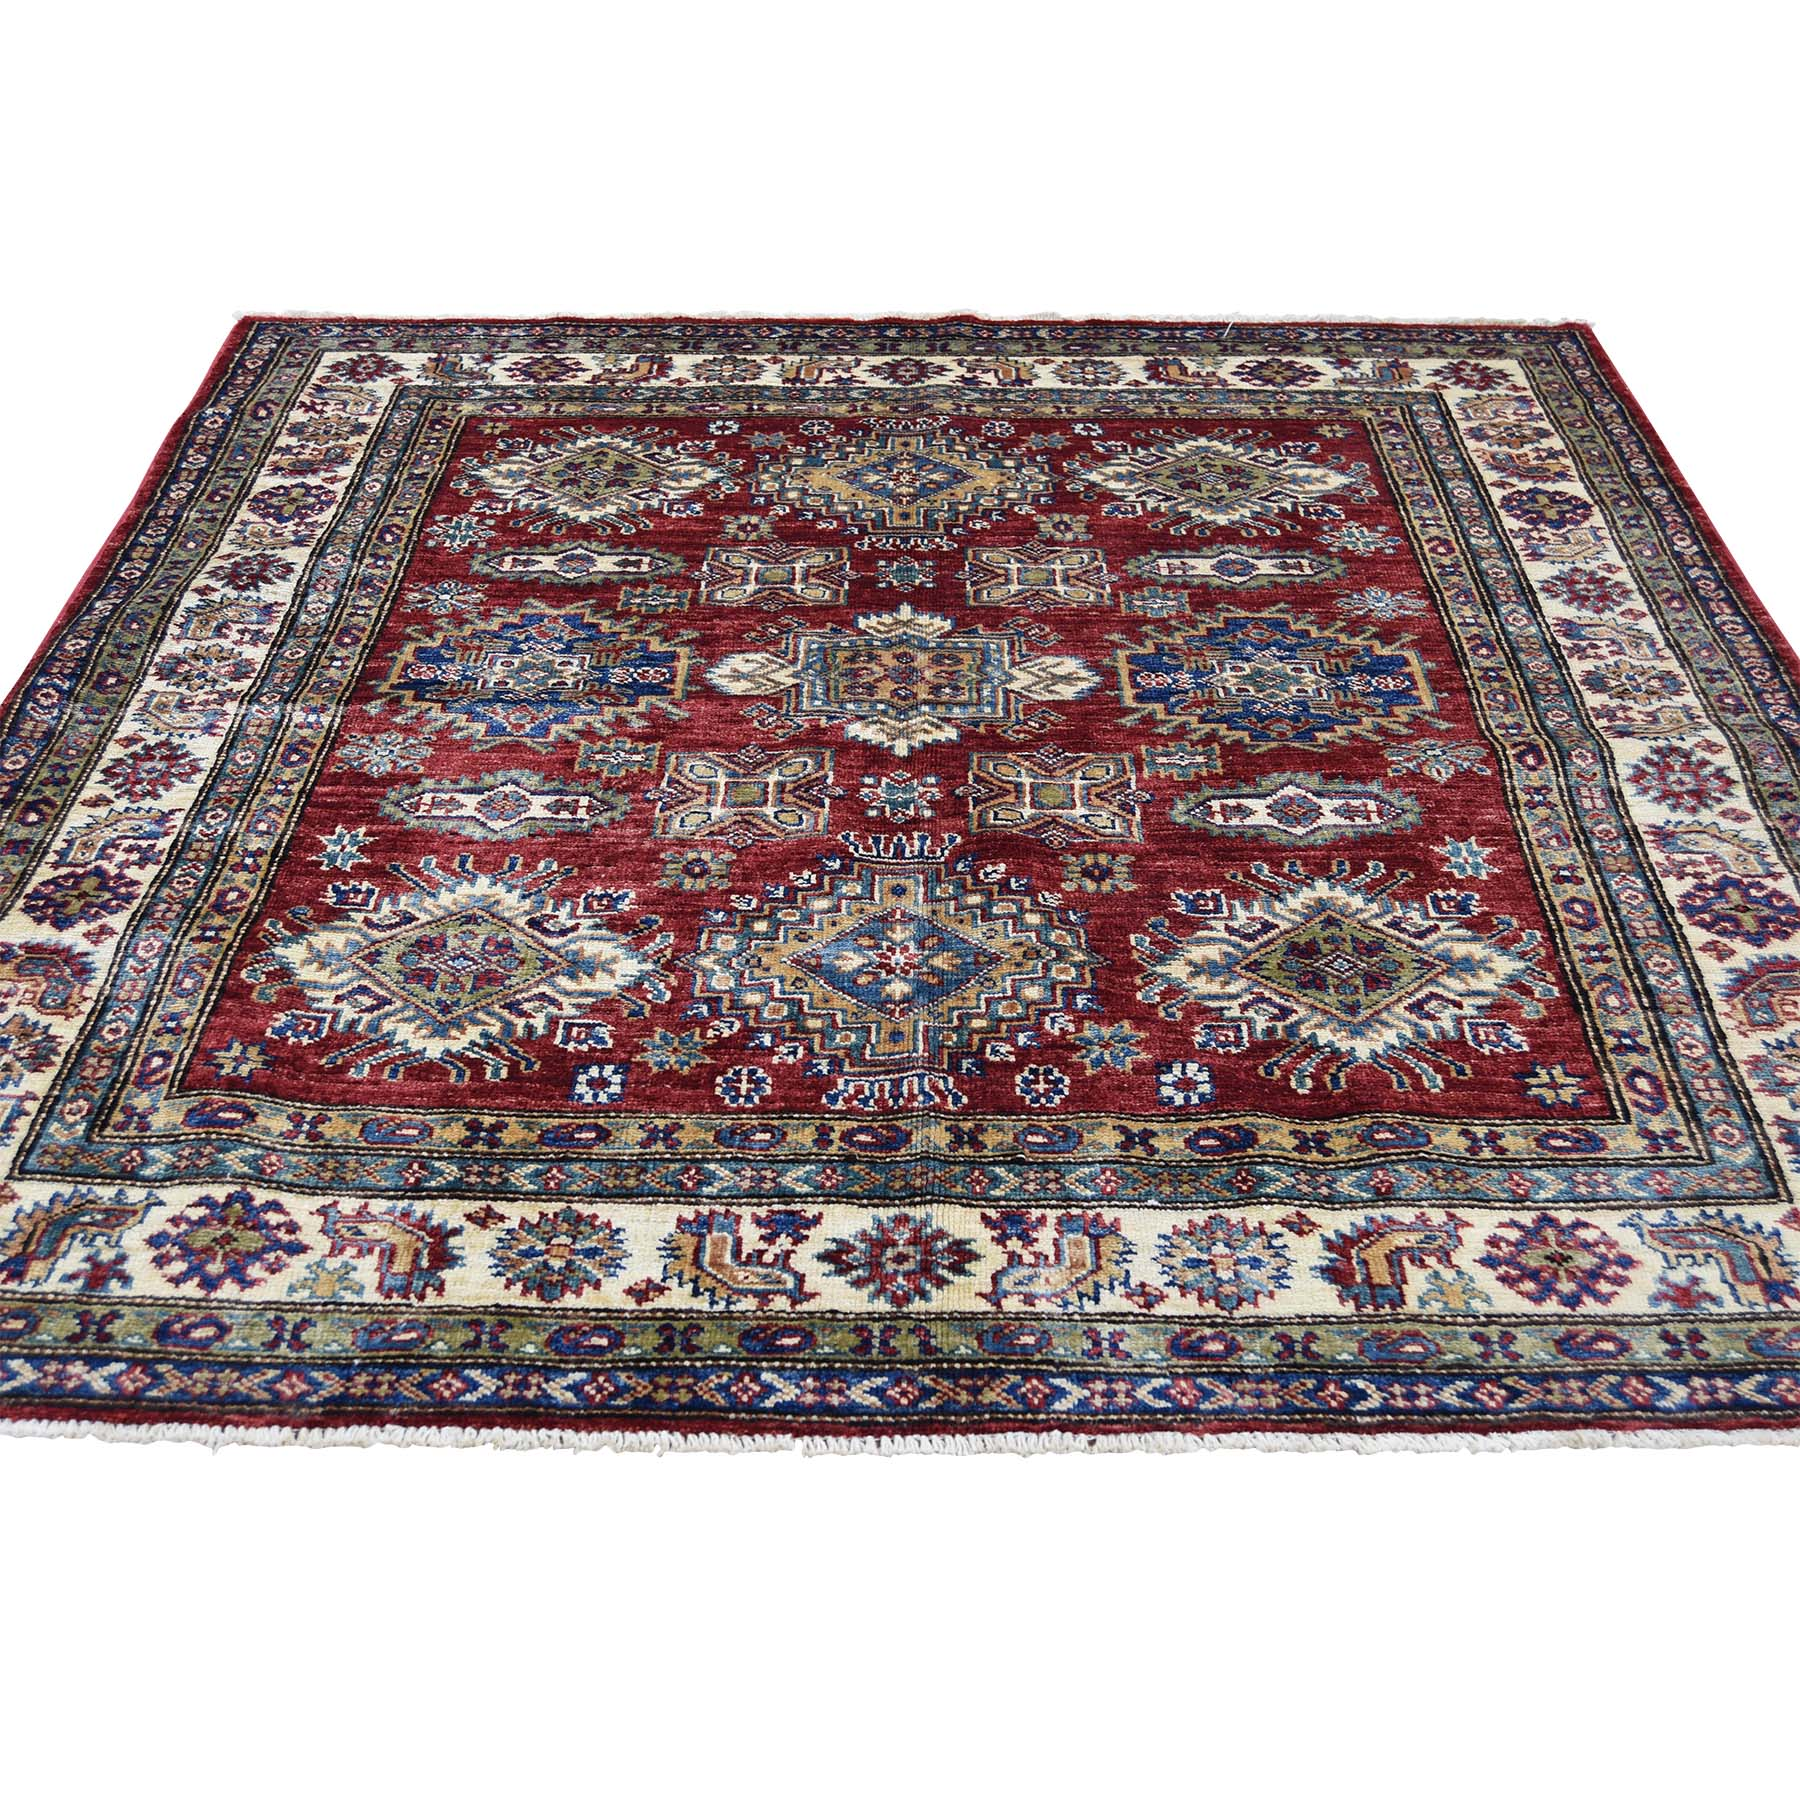 Caucasian Collection Hand Knotted Red Rug No: 0180376